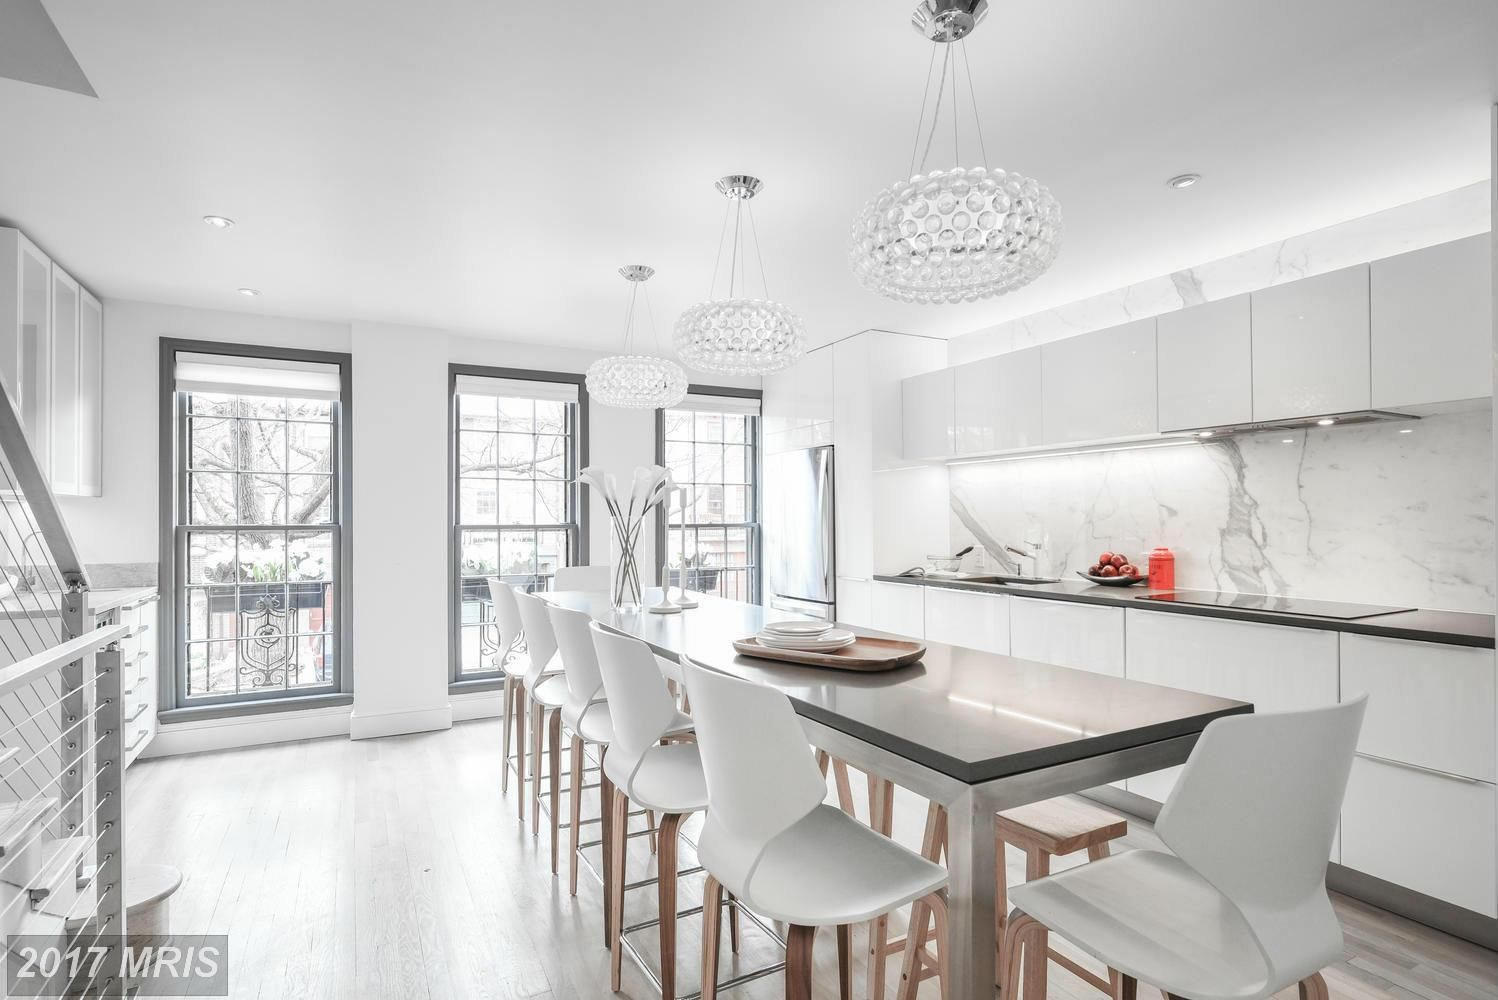 "It is quite rare to find a house that feels this modern, especially in a neighborhood as historic as Old Town Alexandria.  Built in the 1970s and renovated in 2015/2016 this townhouse has only been owned by two families in nearly 50 years! It is designed with family and easy entertaining in mind, which can be seen in the open floor plan of the kitchen and entire lower level. """"It is the cutting edge of a new trend in Old Town -- traditional styling is going by the wayside,"" says listing agent Sue Goodhart of McEnearney Associates. ""Contemporary, comfortable living is embodied in this renovation."" It combines the spaciousness of suburbia (check out the backyard patio!) with the amenities of city living -- it's less than a block from the waterfront where you can catch a water taxi to DC and is surrounded by dozens of upscale restaurants and shops to choose from. This two-bedroom/two-bath townhouse was listed for $1,049,000 but currently has a pending offer on it. Enjoy our gallery and visit mcenearney.com for more info on the lot. (Image: Courtesy McEnearney Associates)"